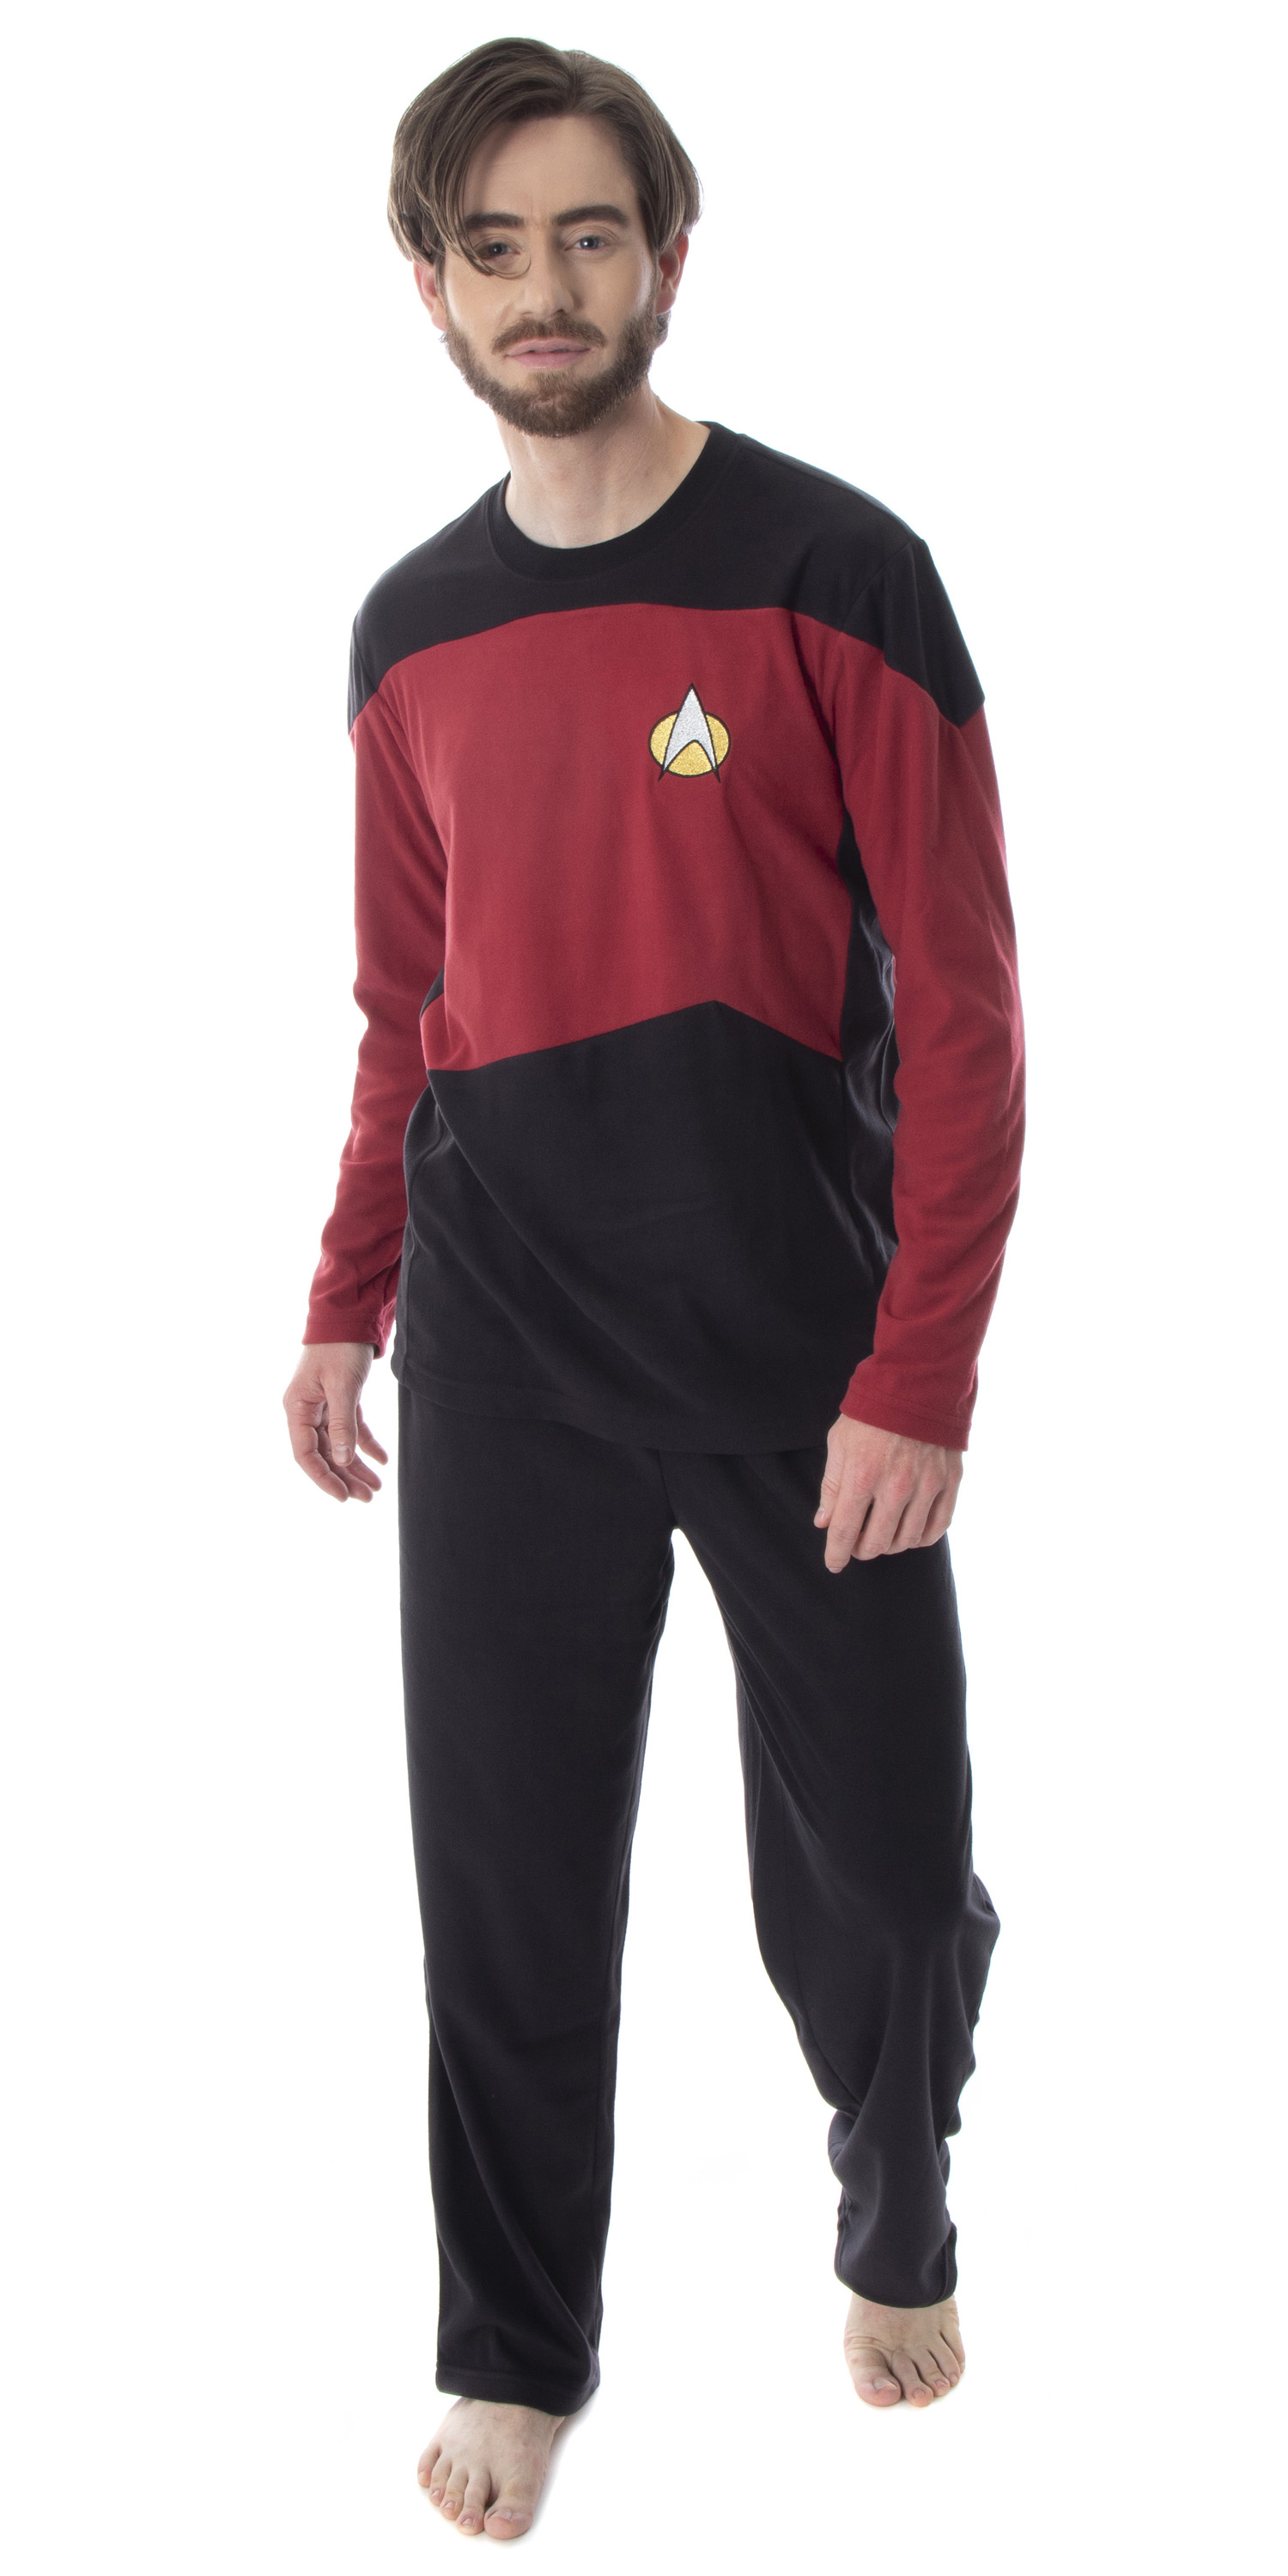 Star Trek The Next Generation Men/'s Allover Character Sleep Pajama Pants SM